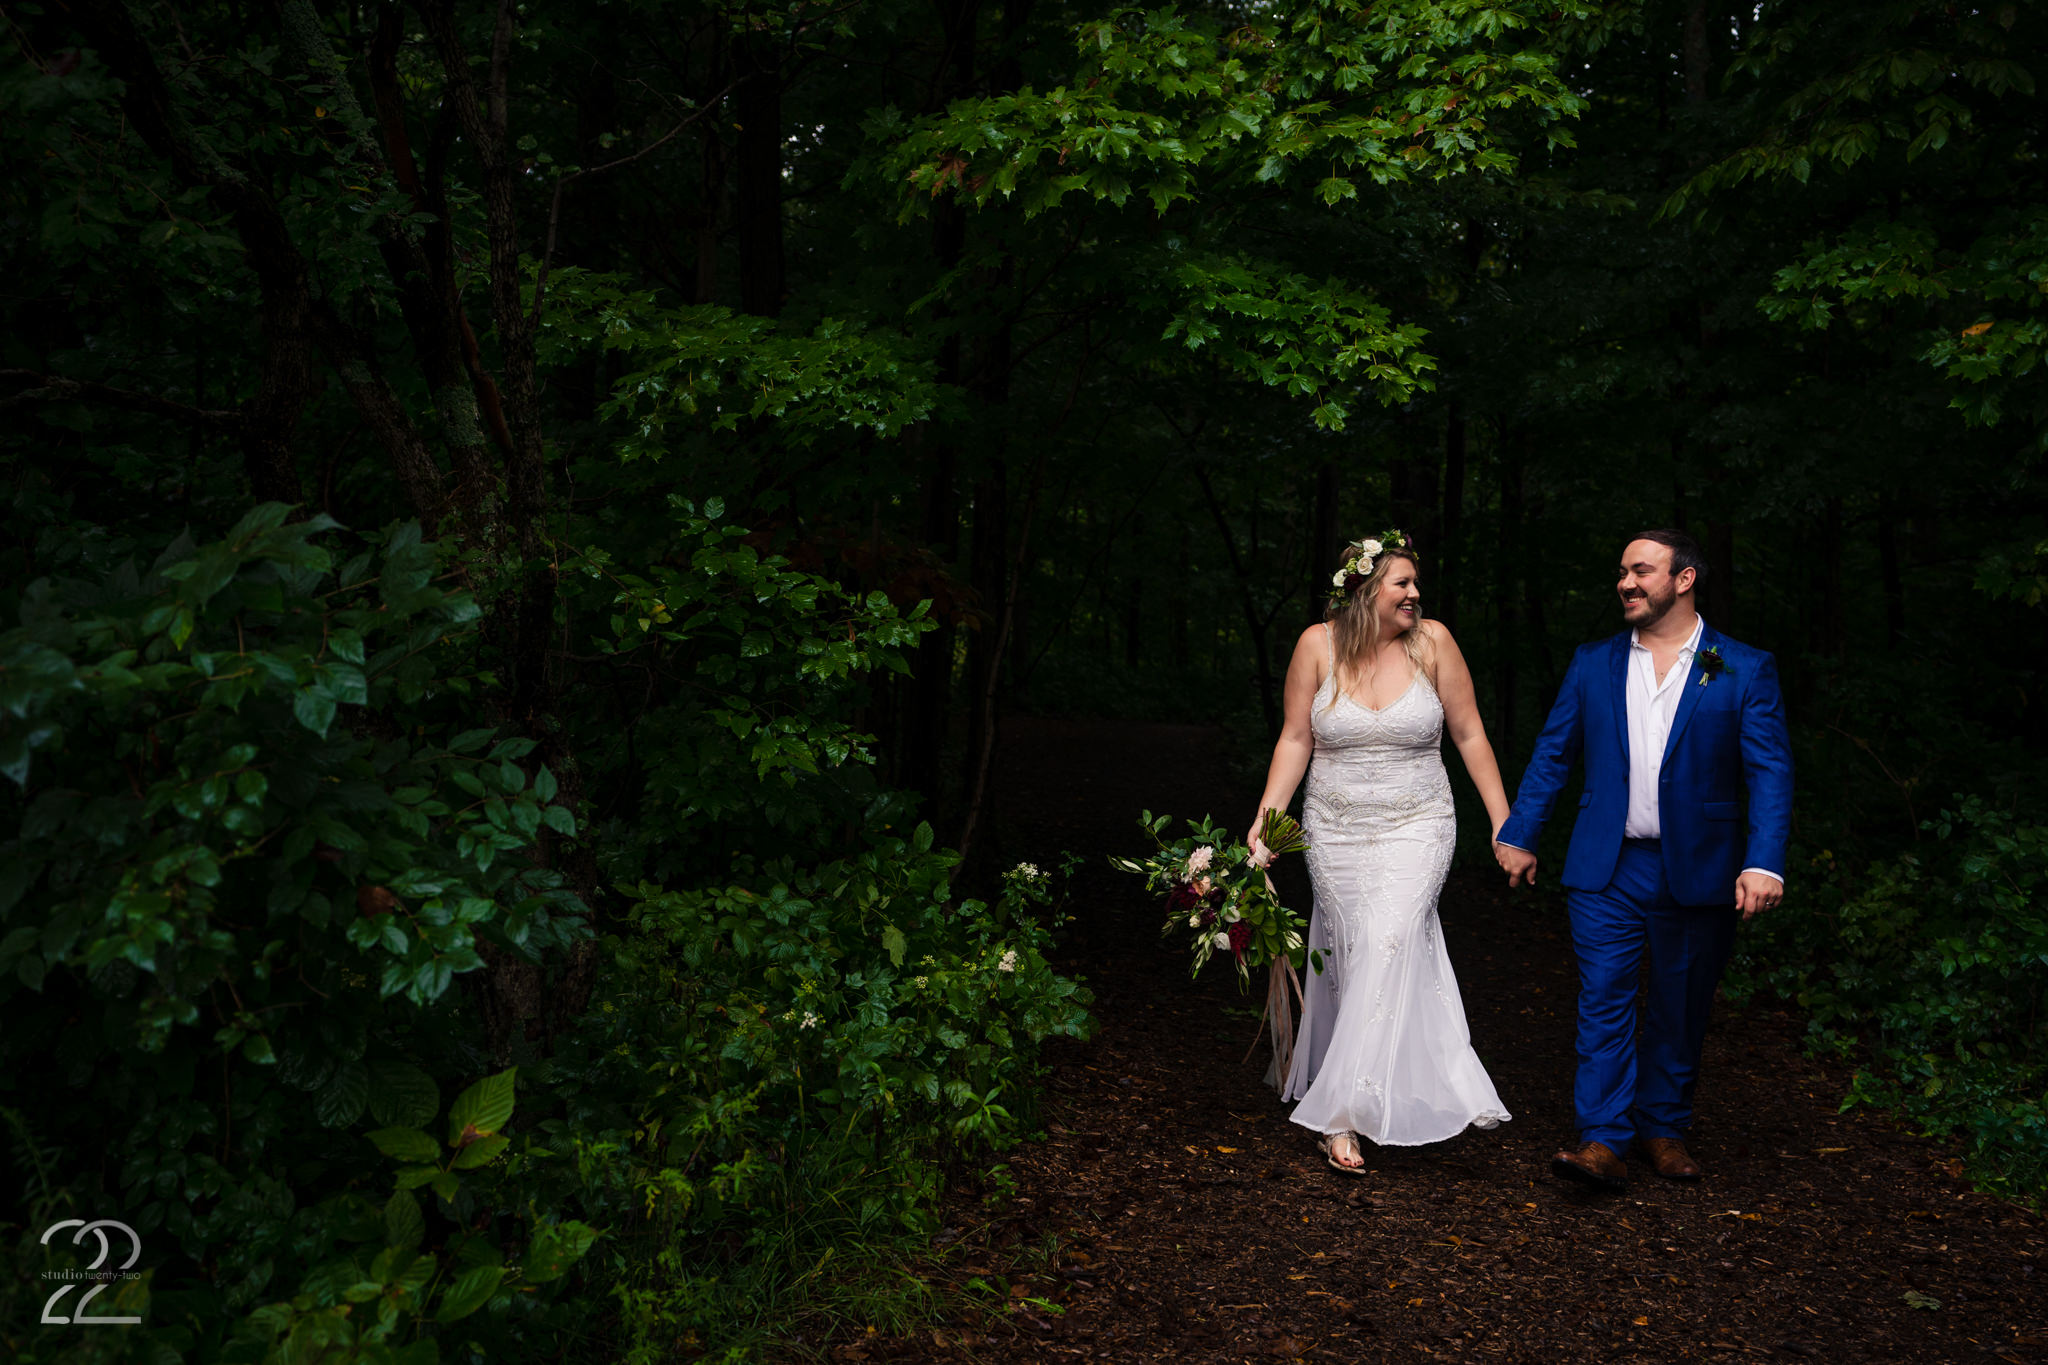 First steps into a new adventure as husband and wife. Megan adores capturing the little looks between the couple, as well as those in between moments (like walking from one photo location to another).